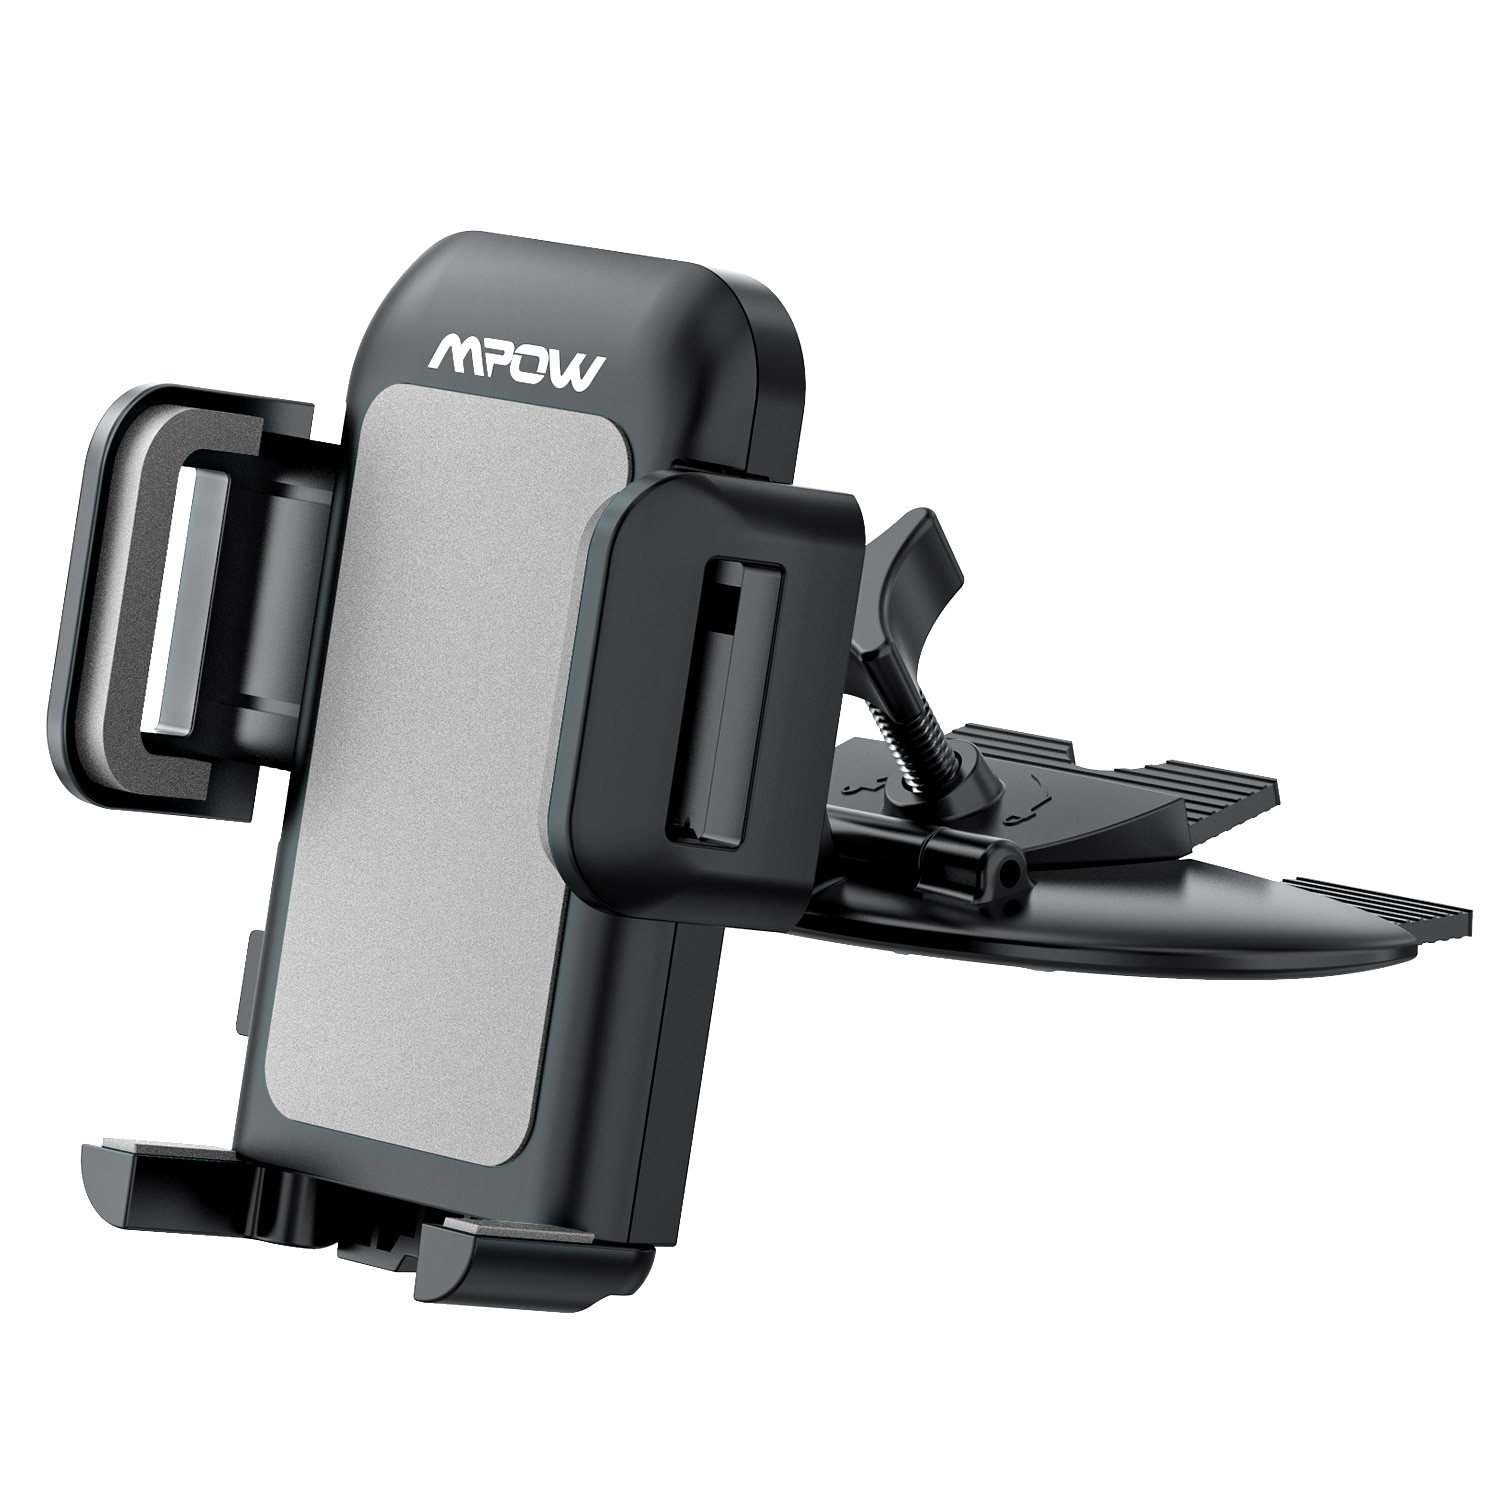 H7738608d4e454a40b46876388862b745h - Mpow 051 Car Phone Holder CD Slot Car Phone Mount with Three-Side Grip and One-Touch Design for iPhone 12/12Mini/12Pro/12Pro Max